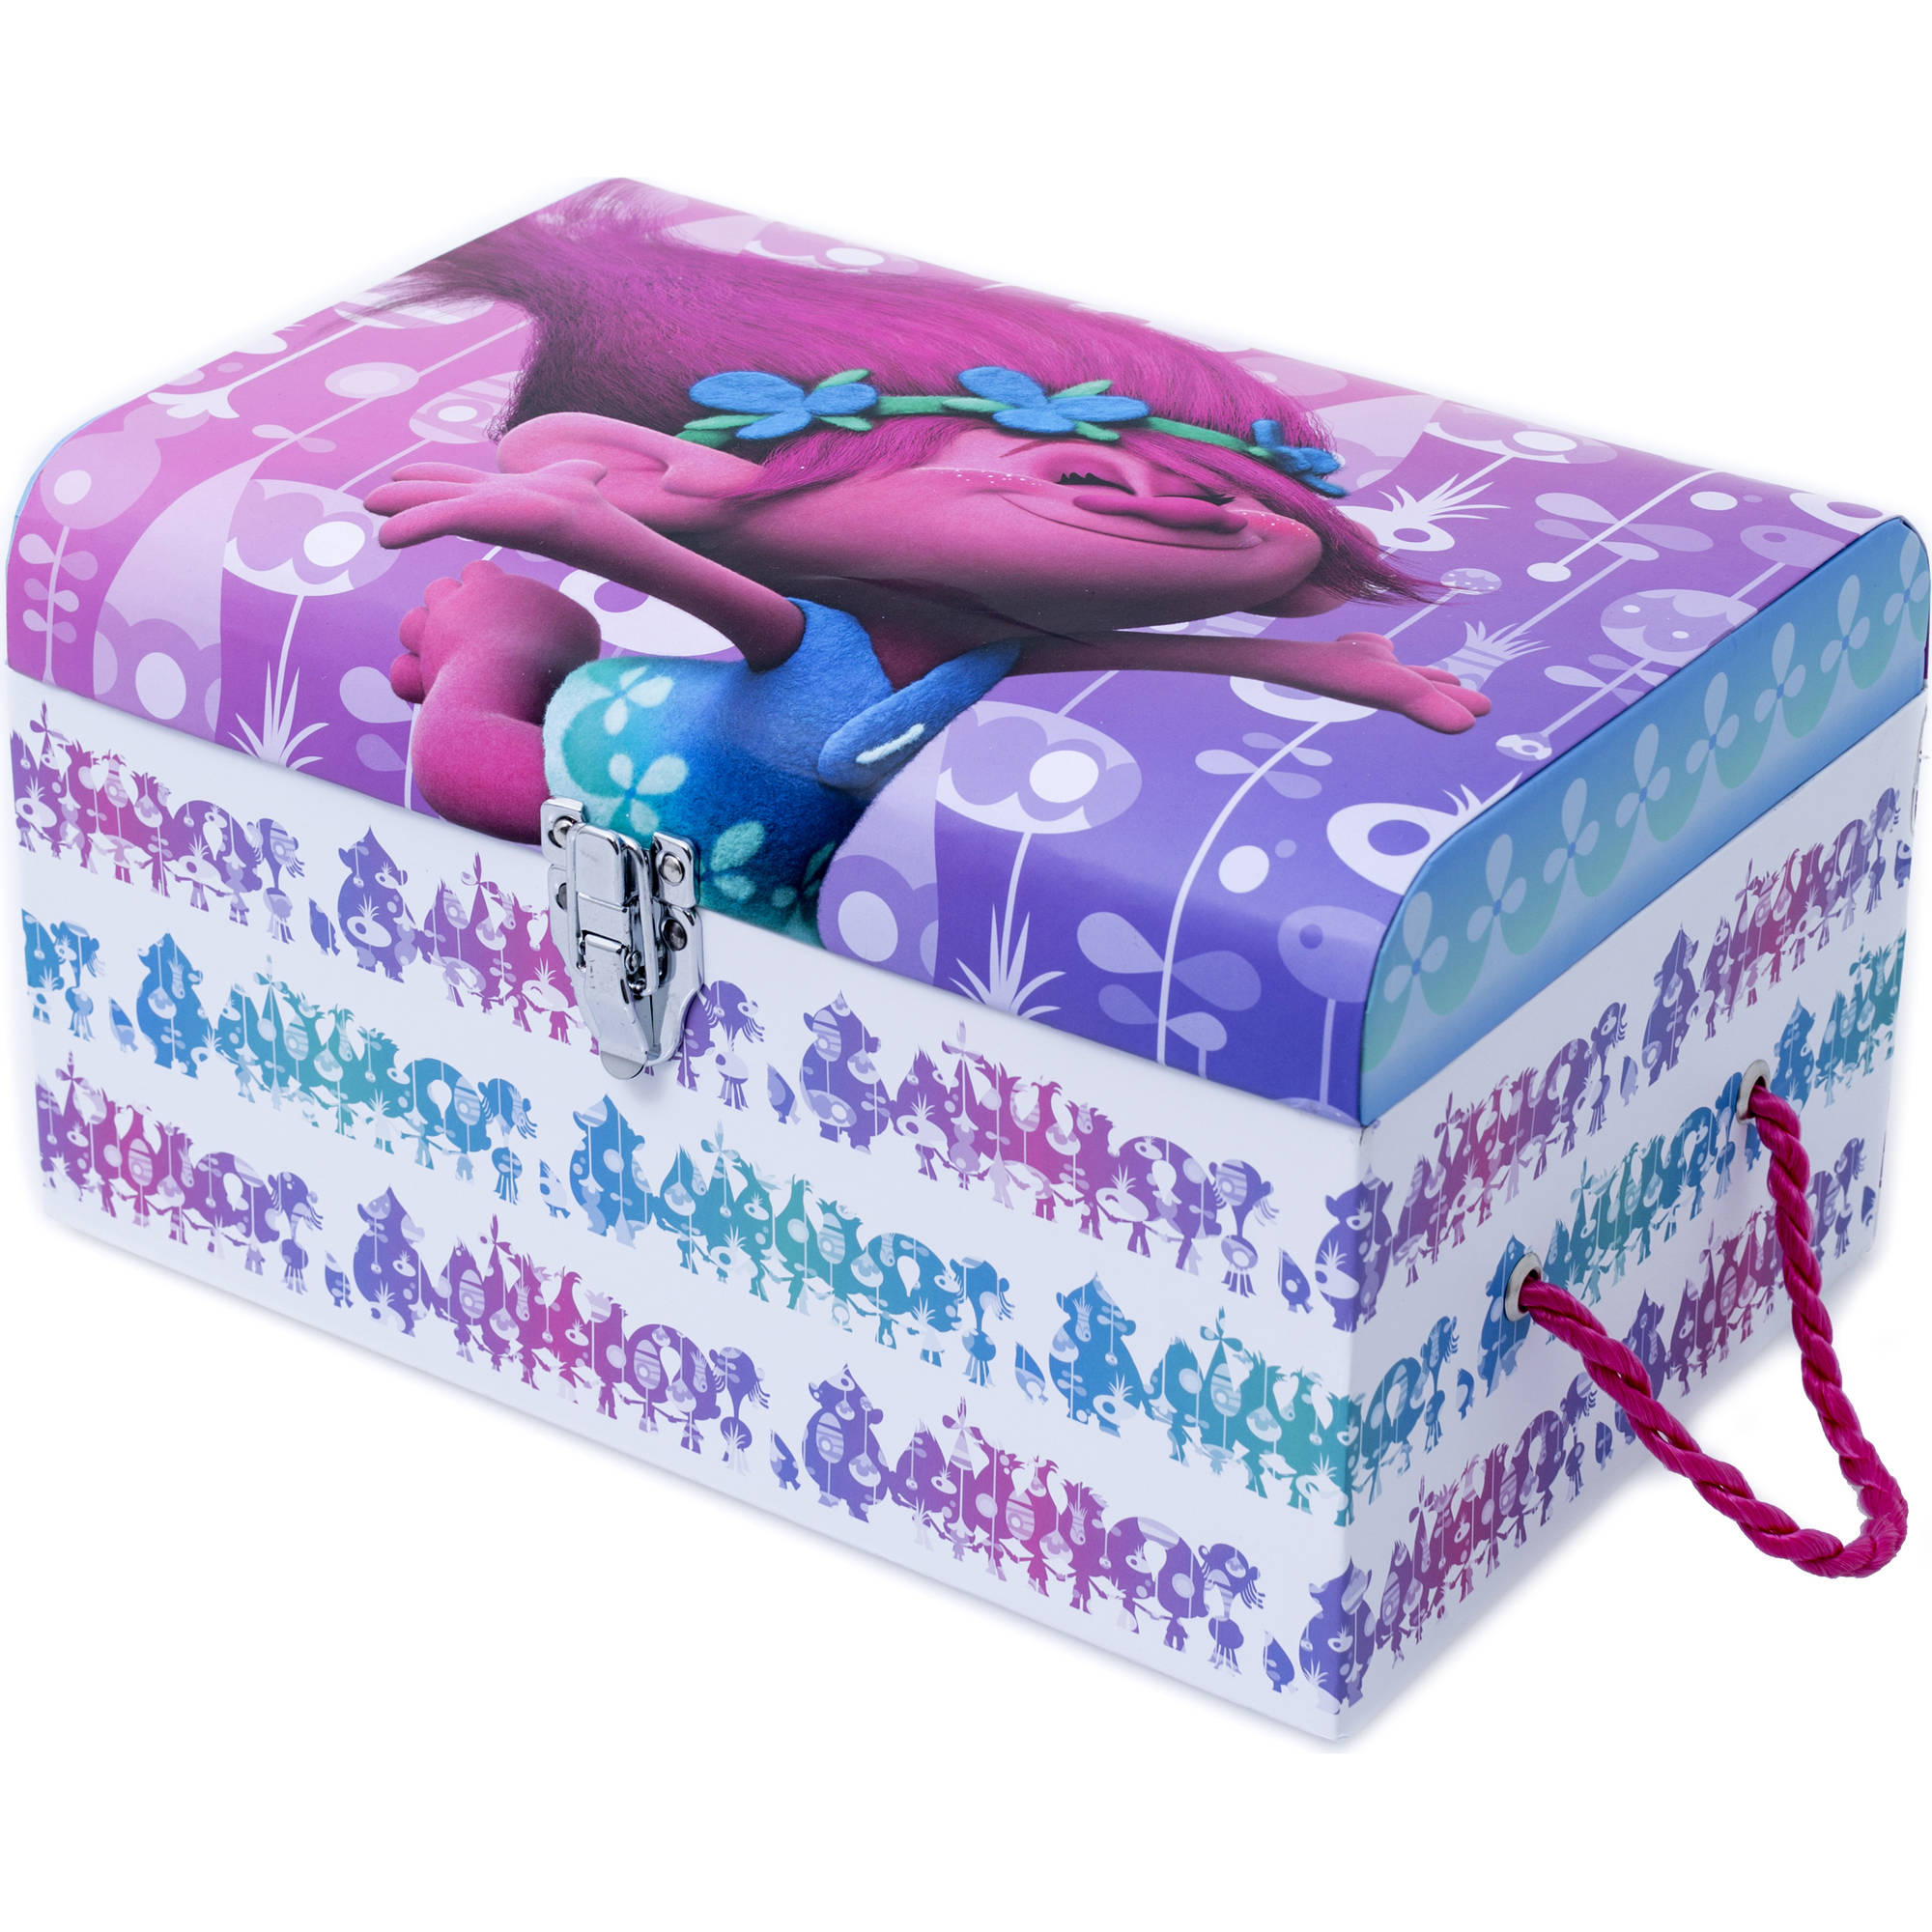 Trolls Medium Storage Trunk, Multi-Color